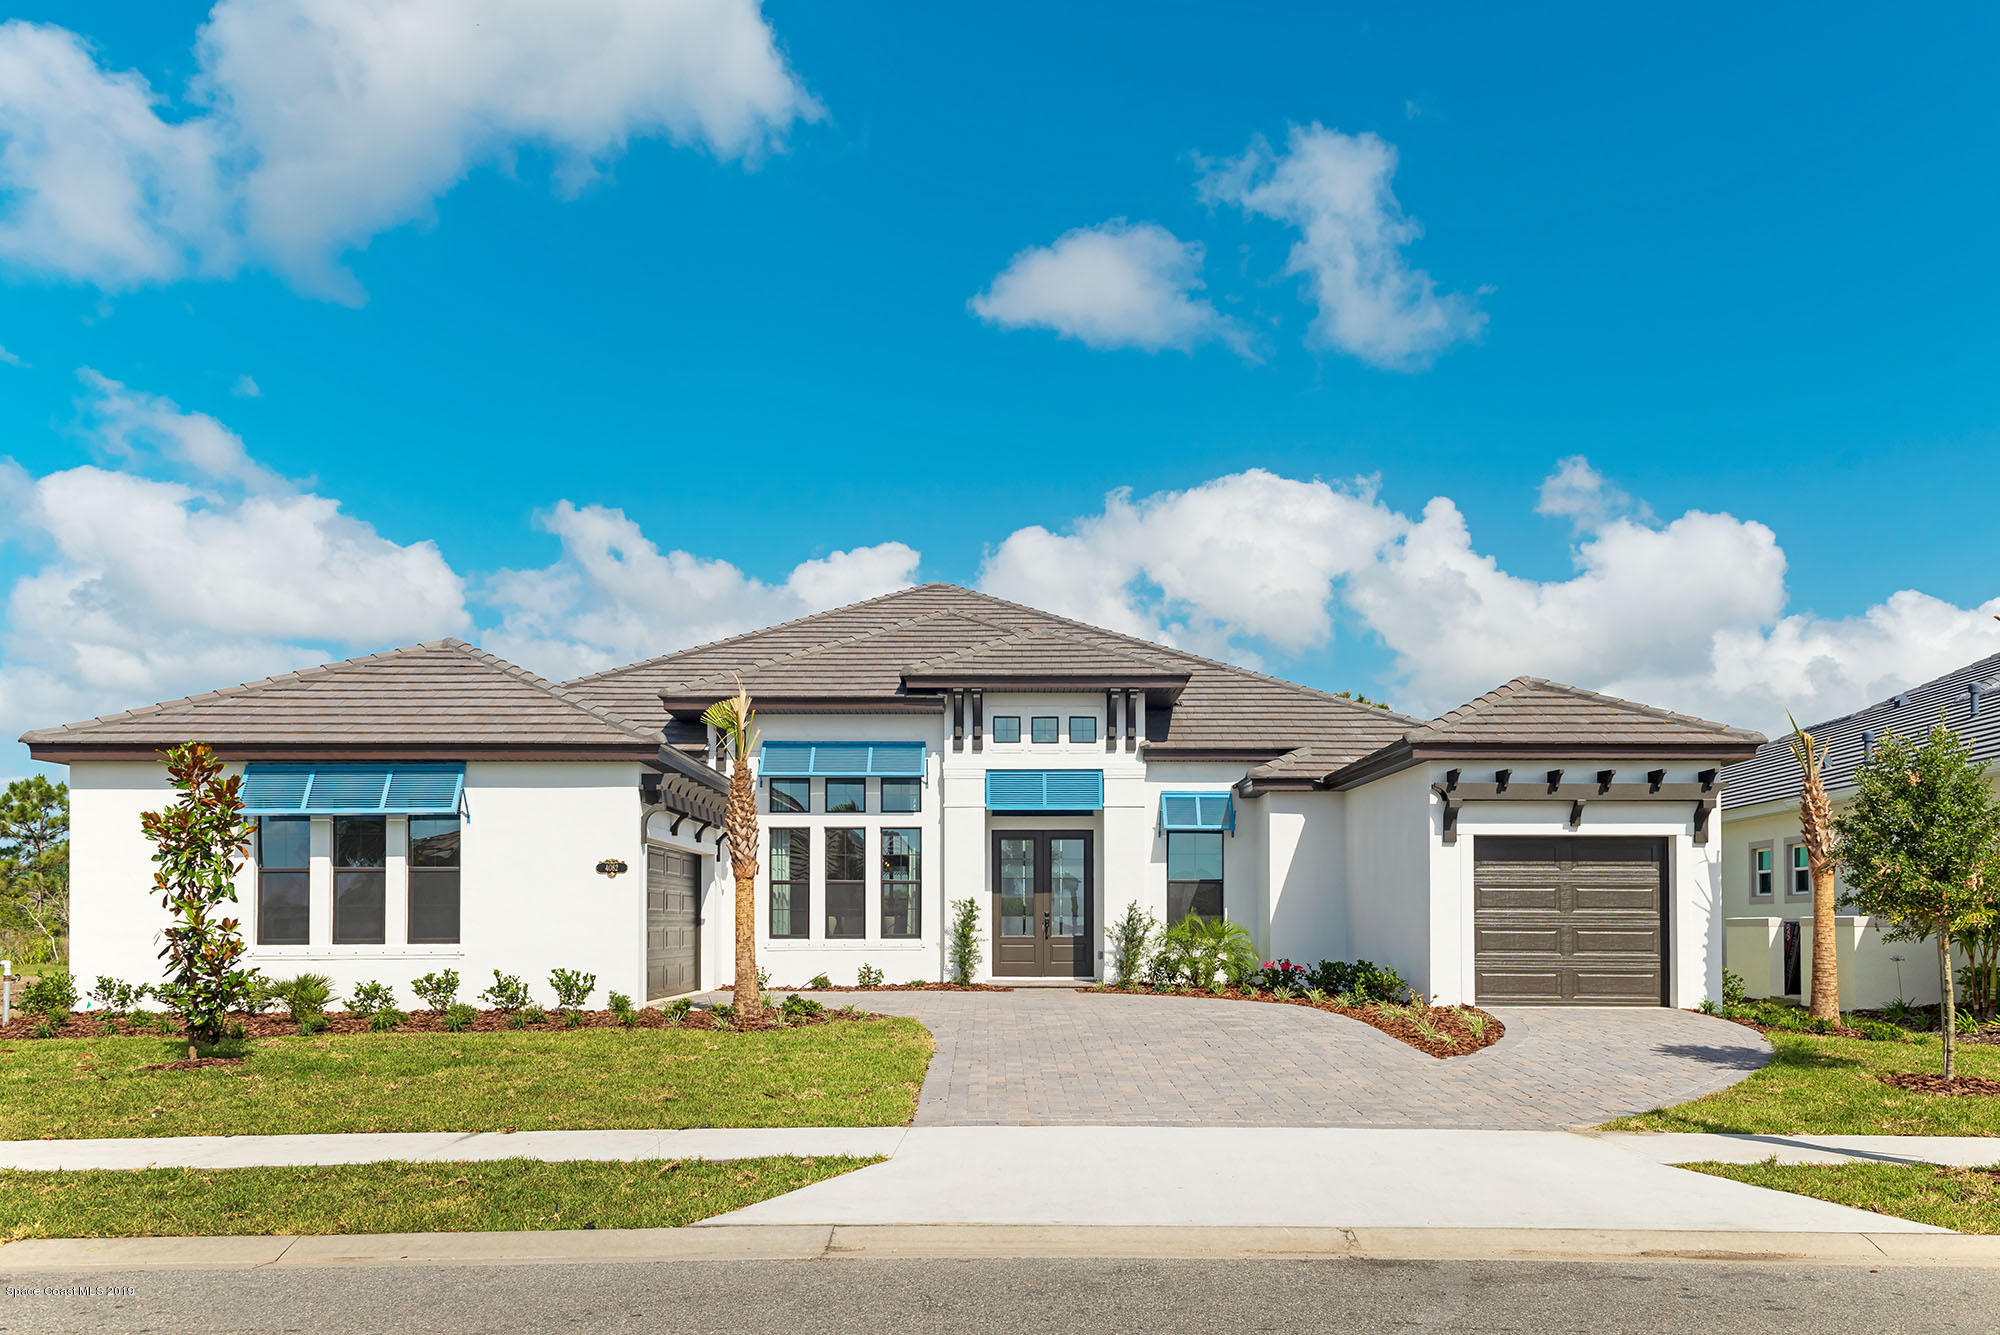 Single Family Homes for Sale at 4082 Durksly Melbourne, Florida 32940 United States